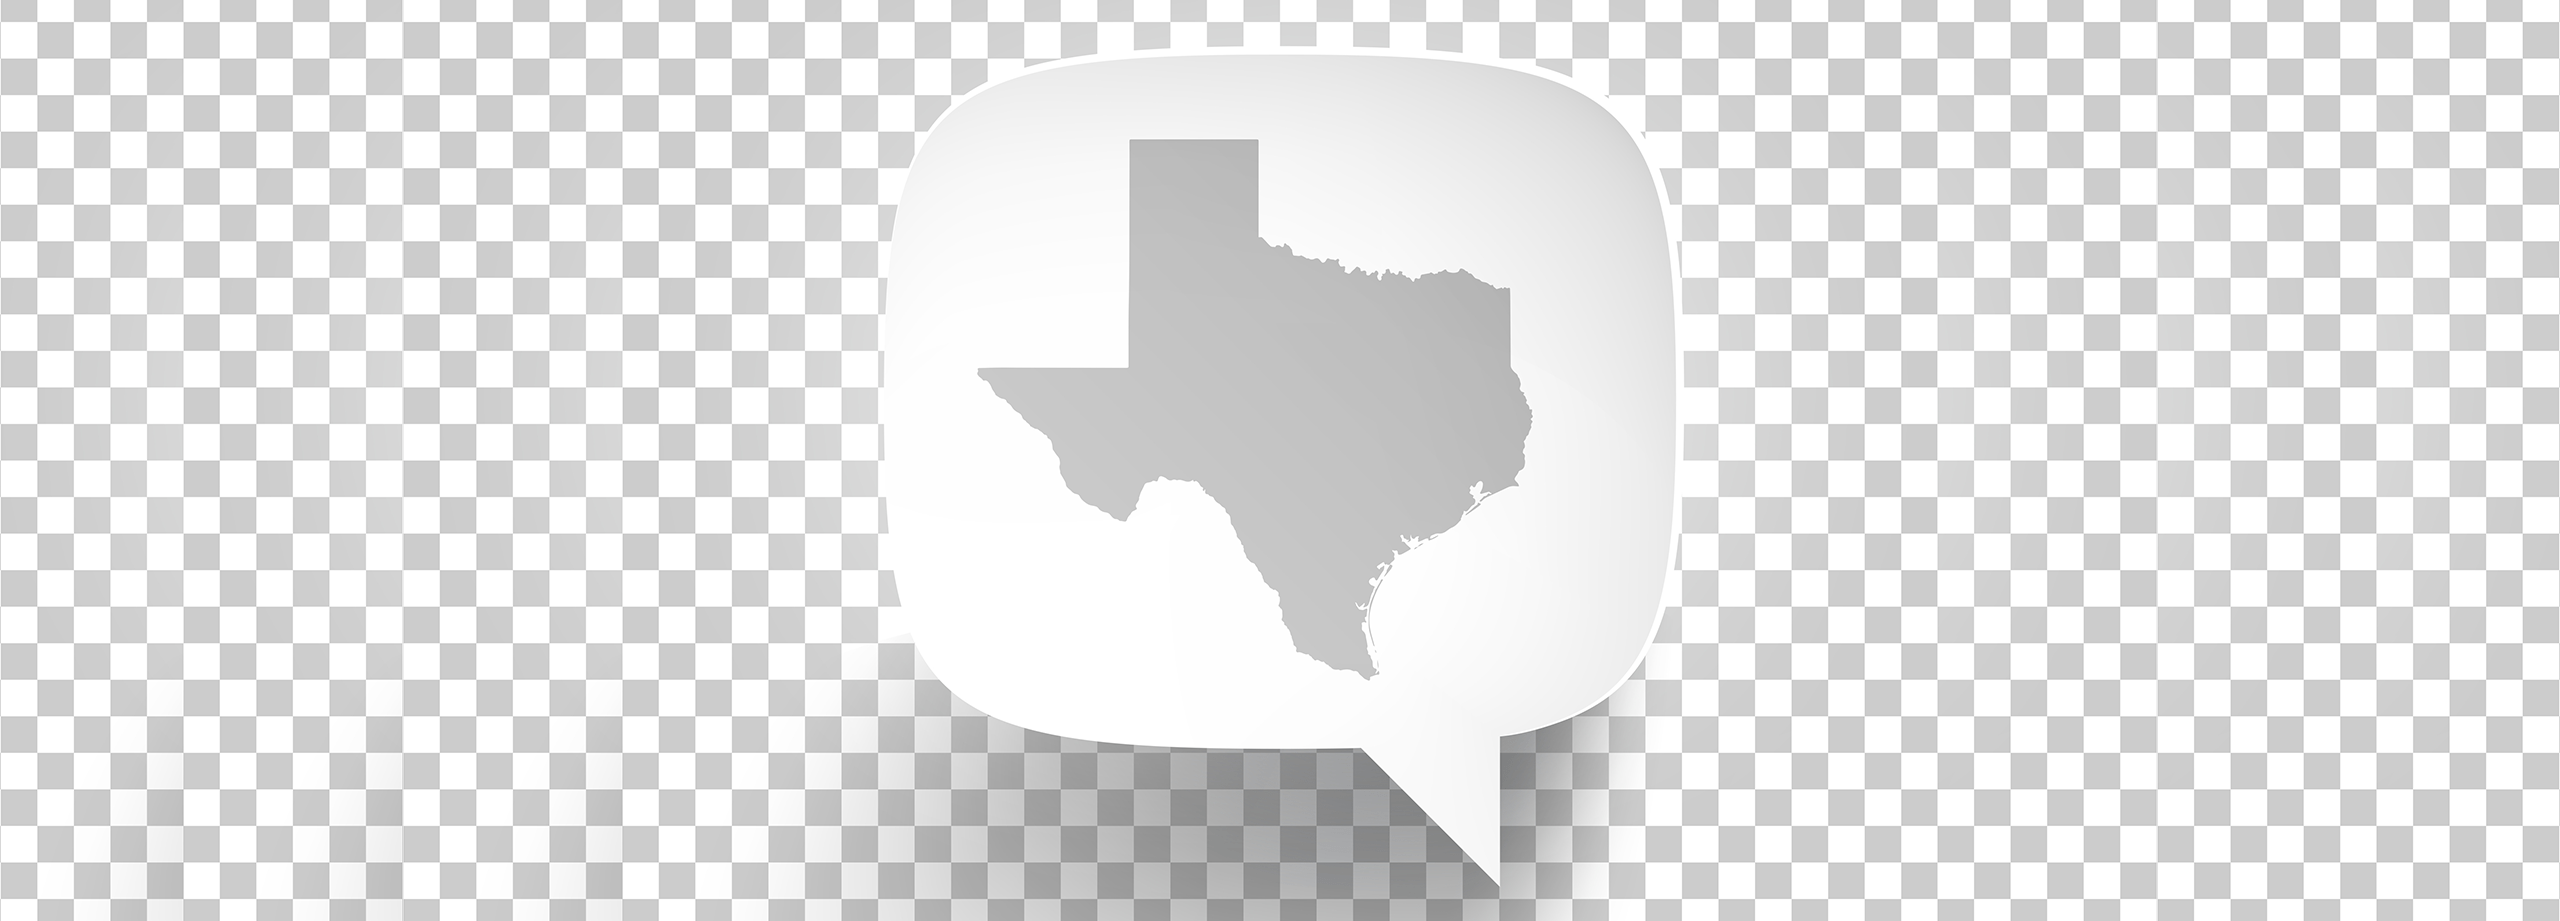 Photo of a speech bubble with the state of Texas in it.